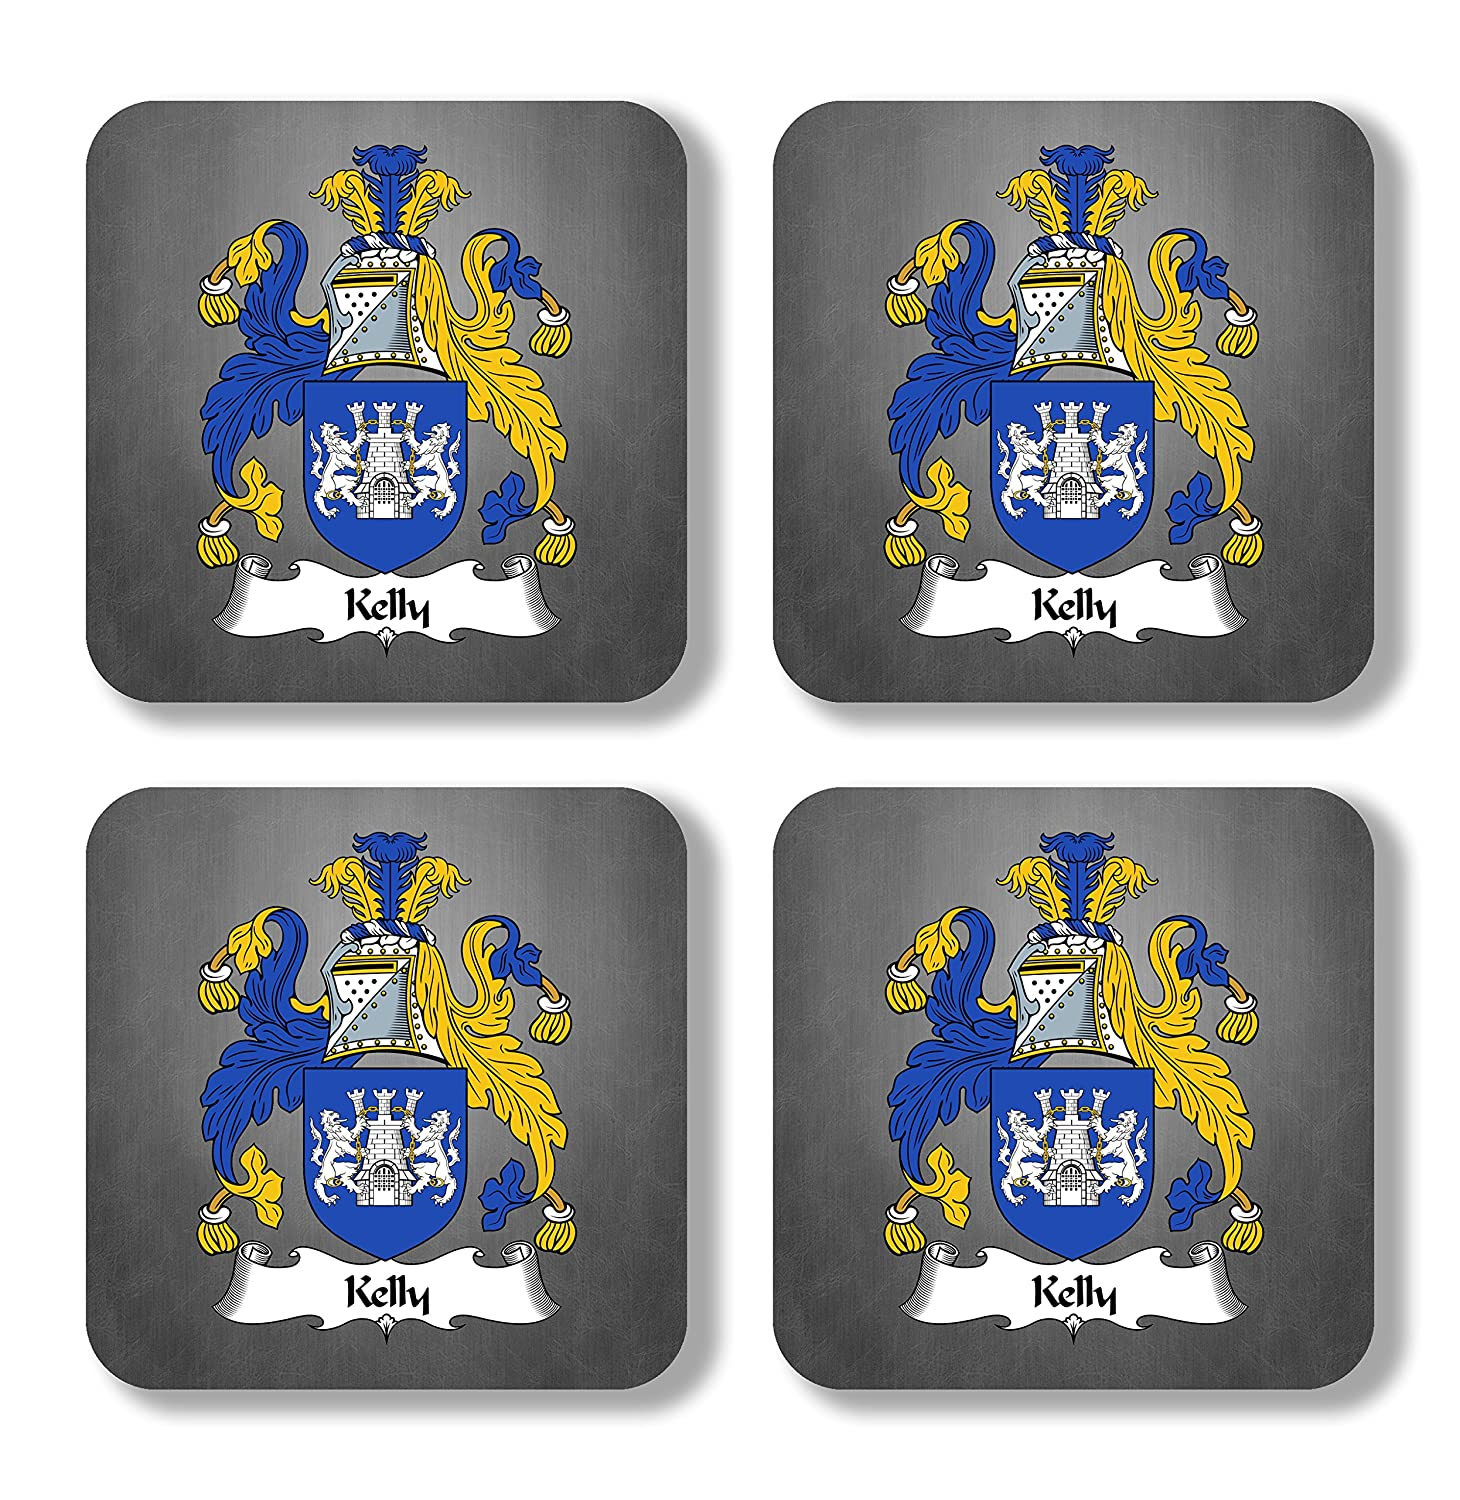 Kelly Coat of Arms/Family Crest Coaster Set, by Carpe Diem Designs – Made in the U.S.A.